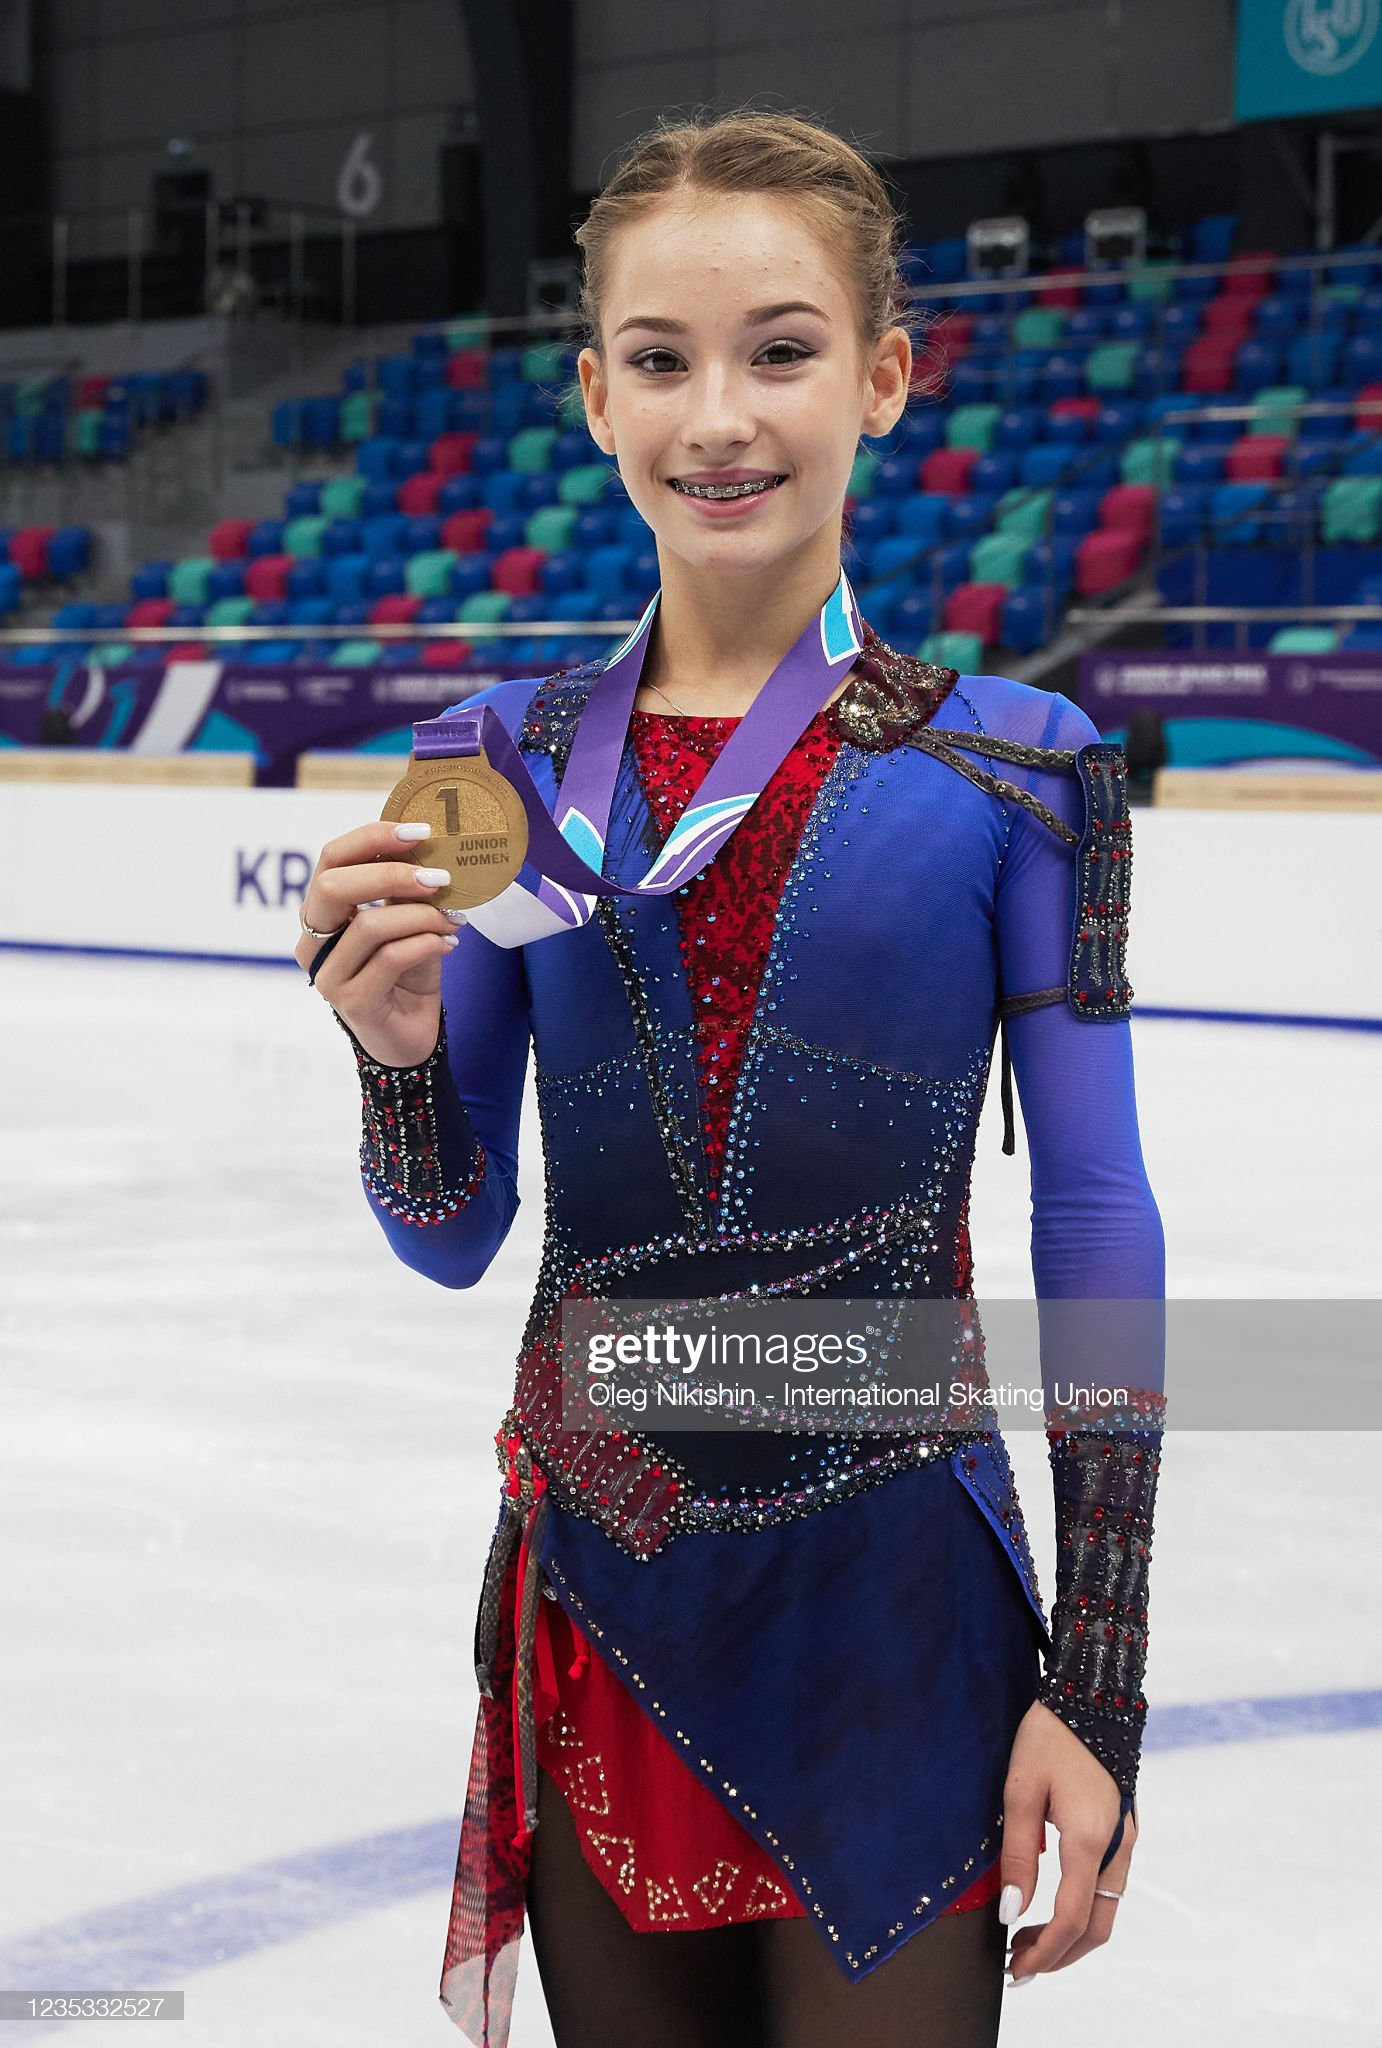 https://media.gettyimages.com/photos/golden-medalist-sofia-akateva-poses-after-a-win-ceremony-the-isu-picture-id1235332527?s=2048x2048